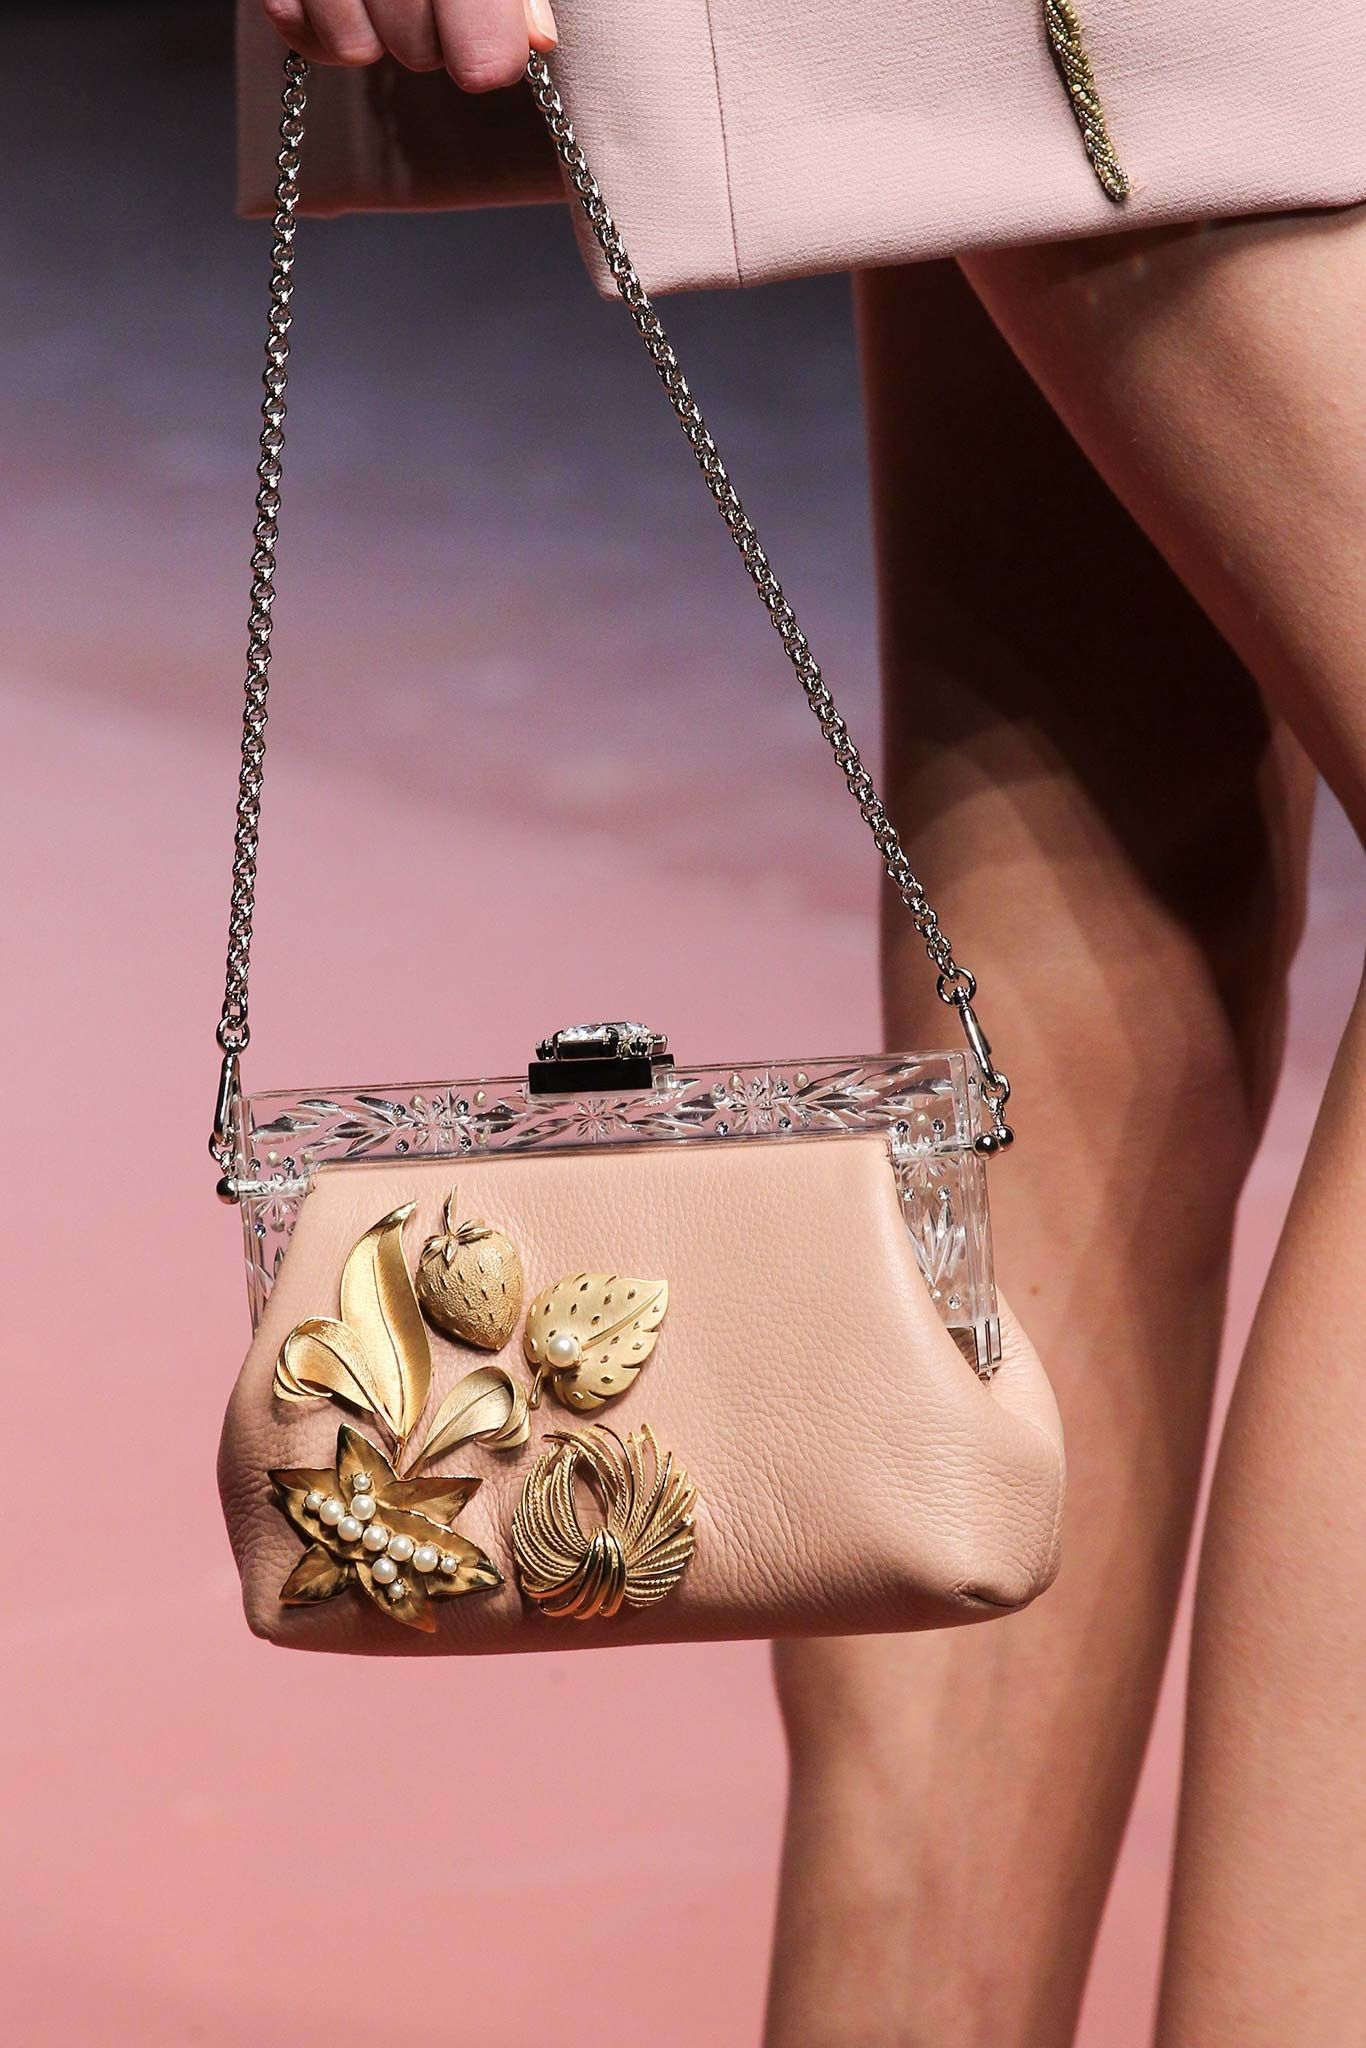 Dolce & Gabbana Fall 2015 Ready-to-Wear Accessories Photos - Vogue